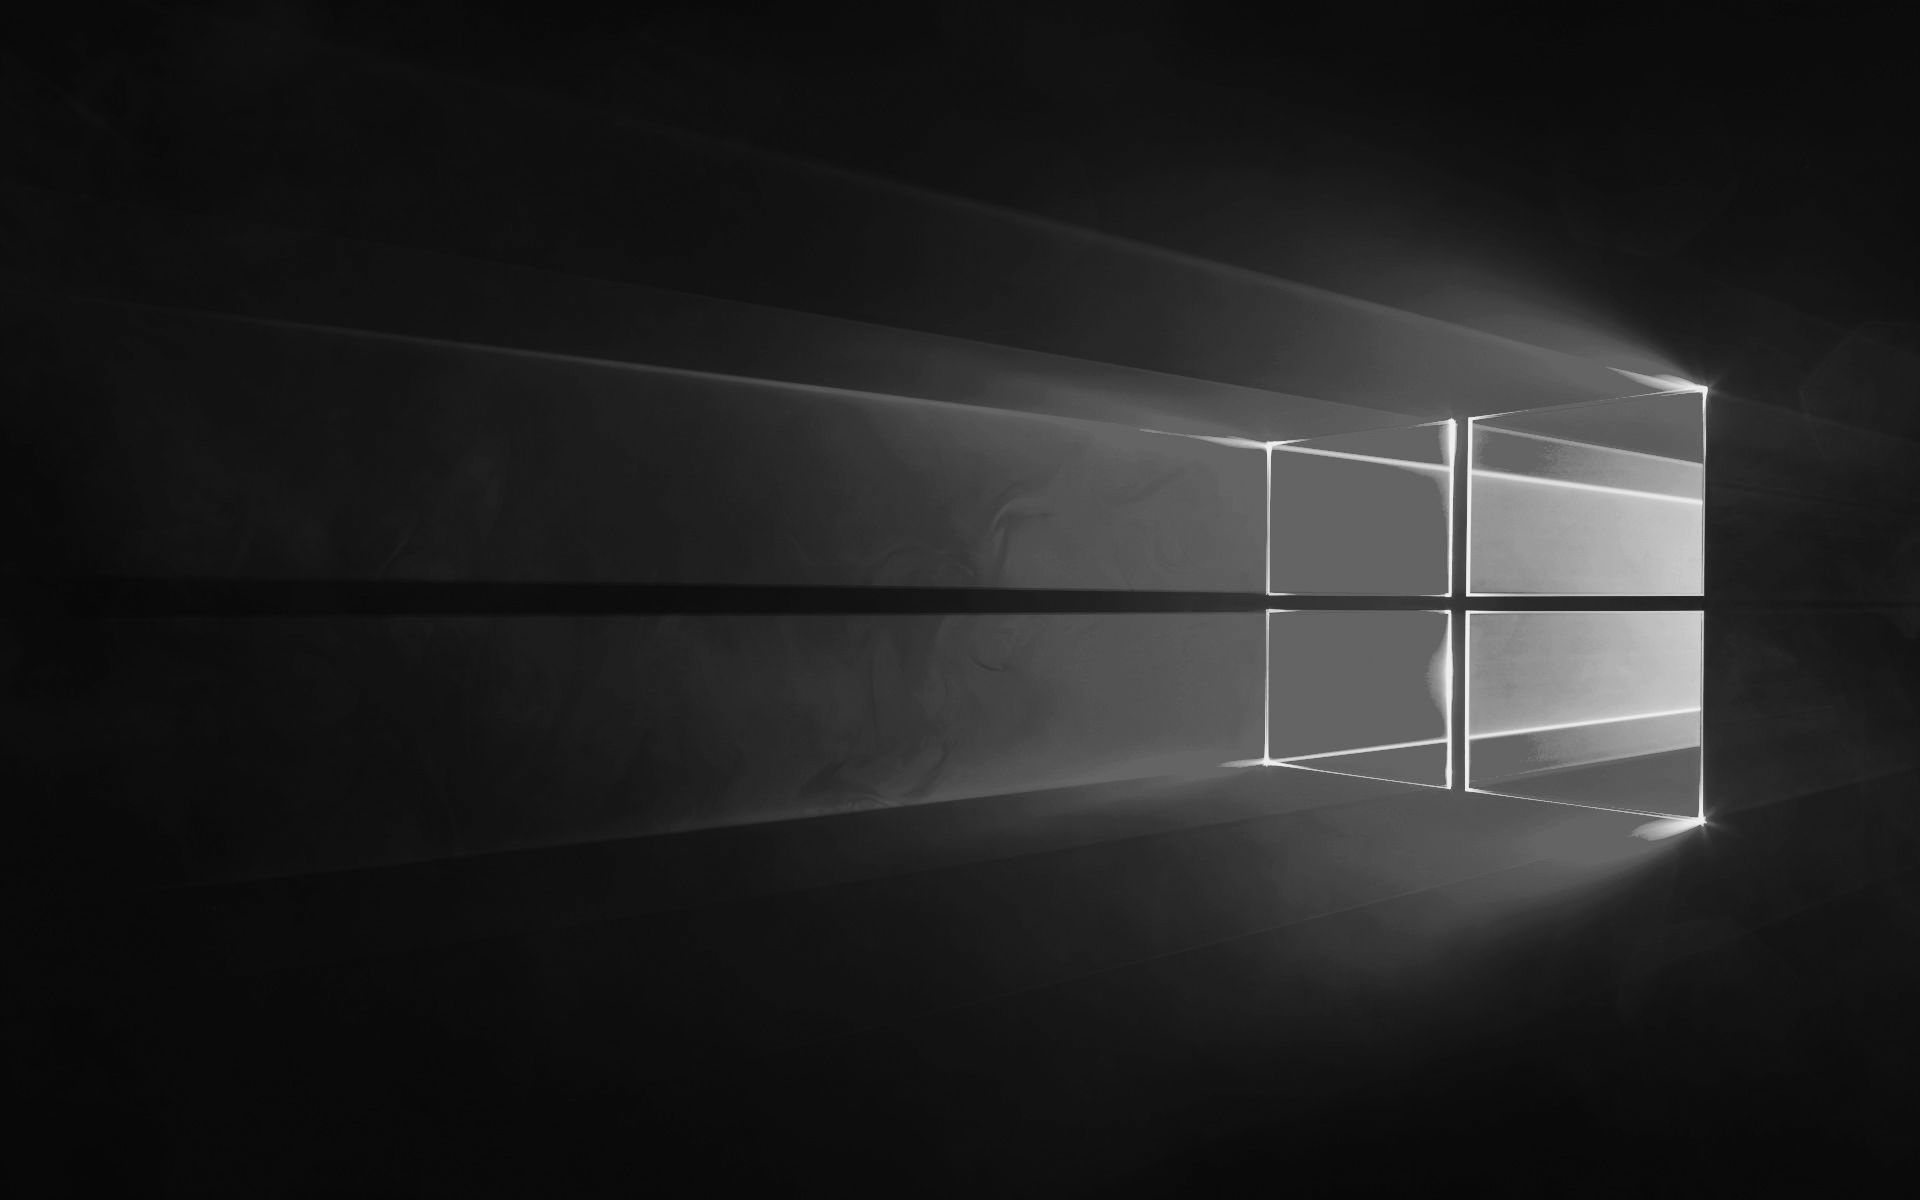 The Official Windows 10 Wallpaper And A Few Colour Swaps